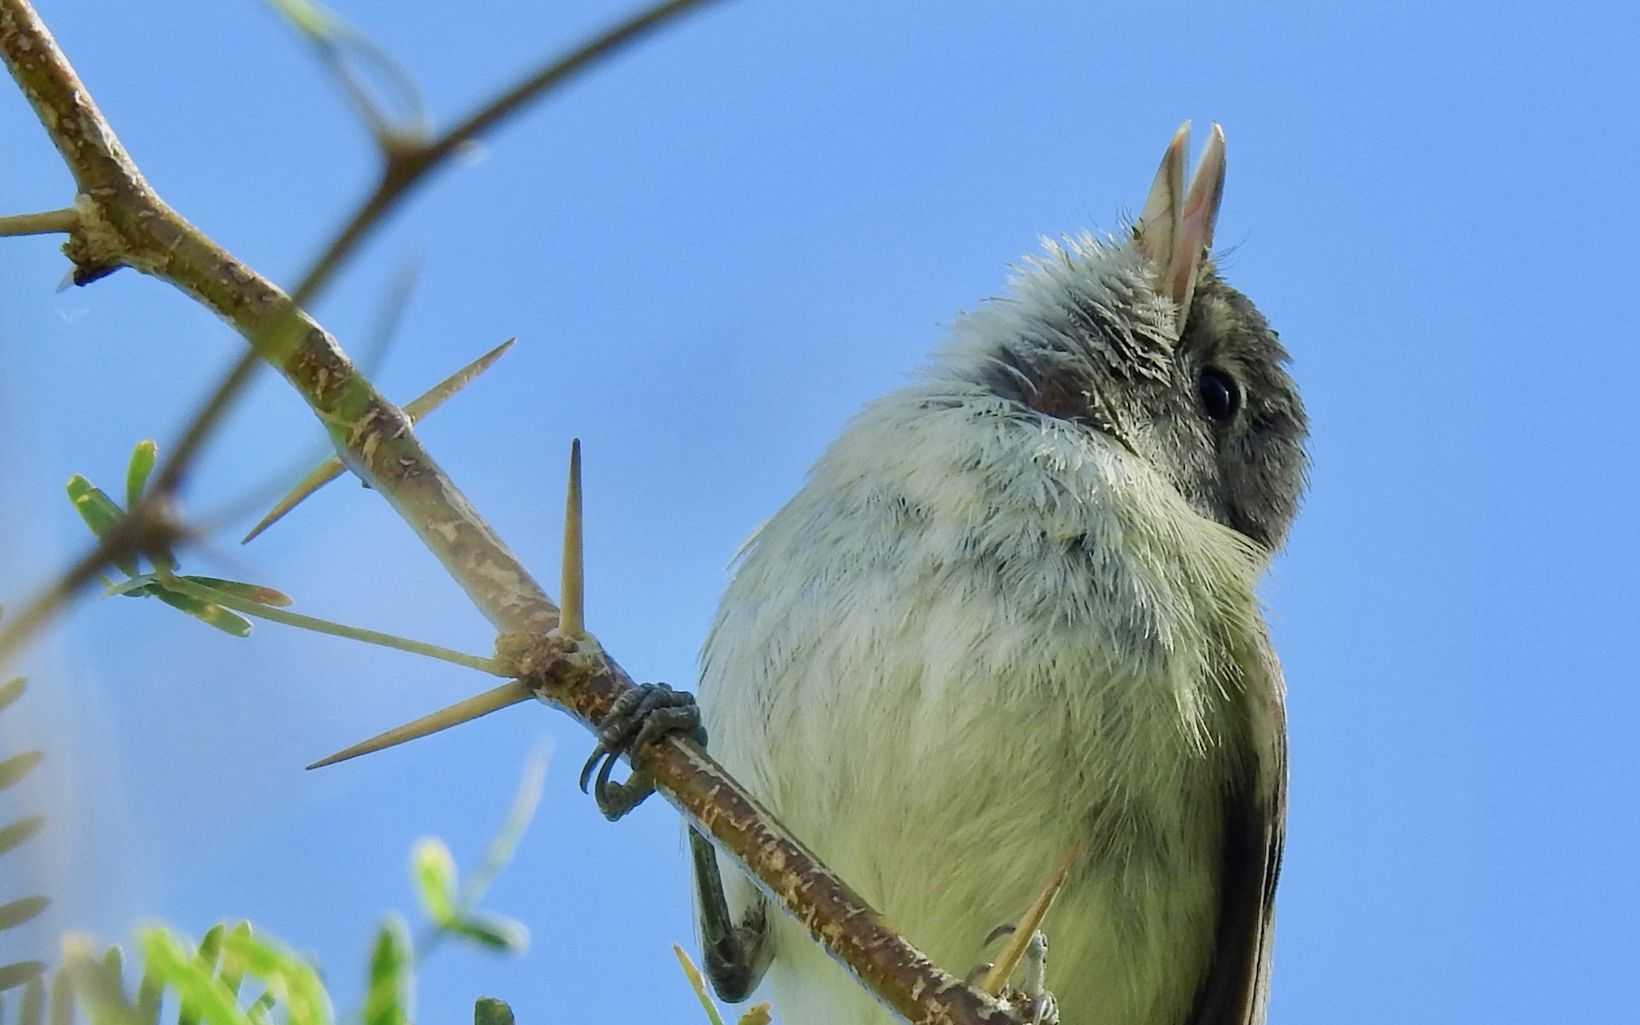 A closeup of a little sparrow-like bird perched on a thorny branch.